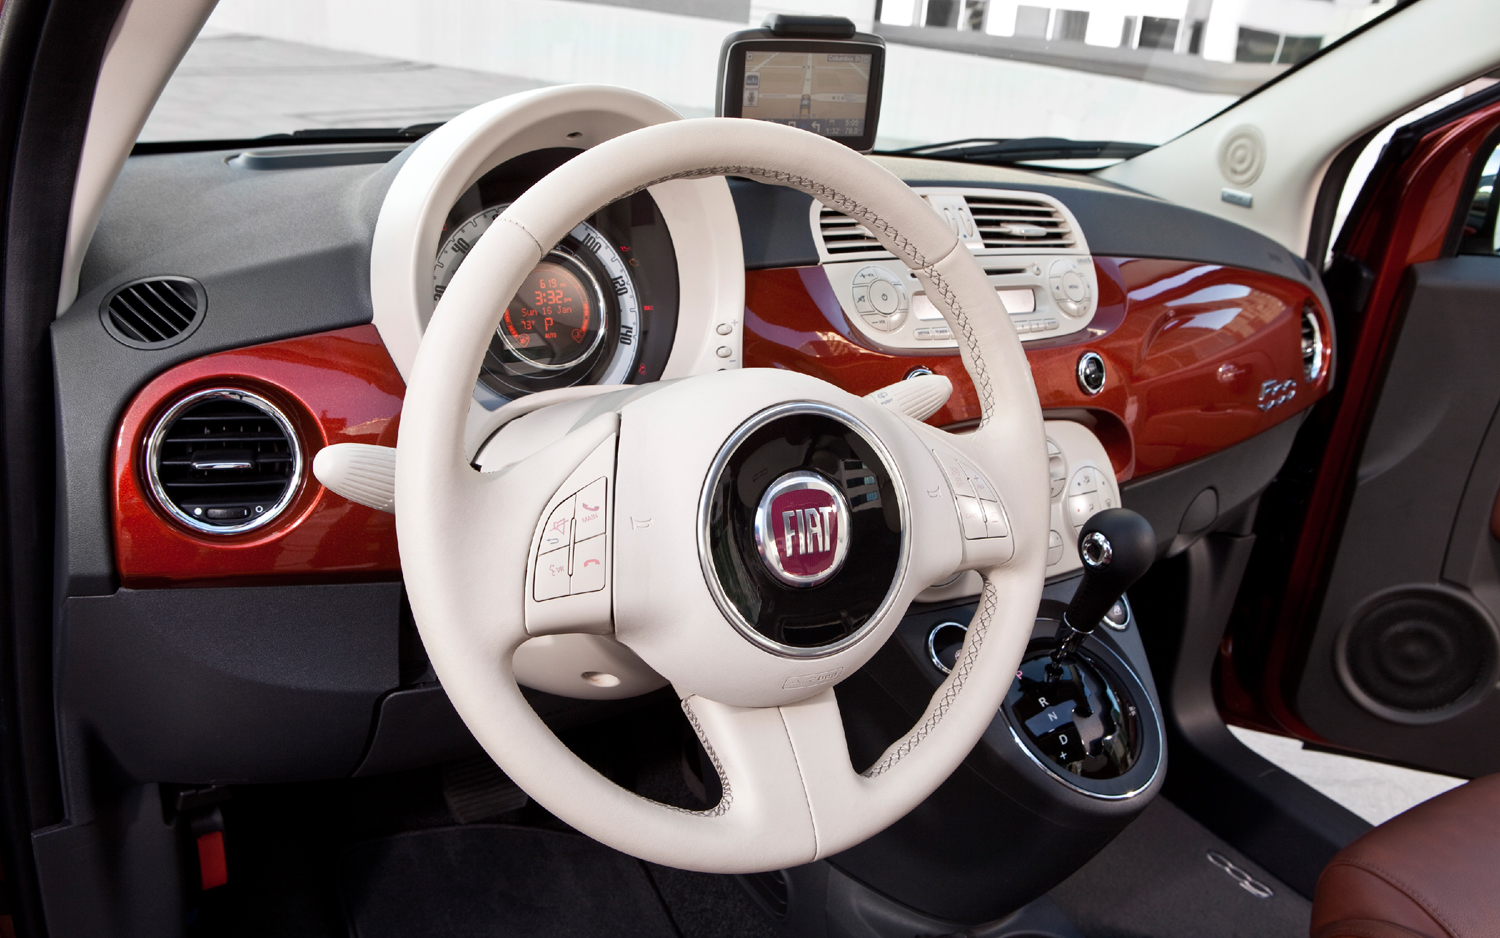 FIAT 500 - Review and photos